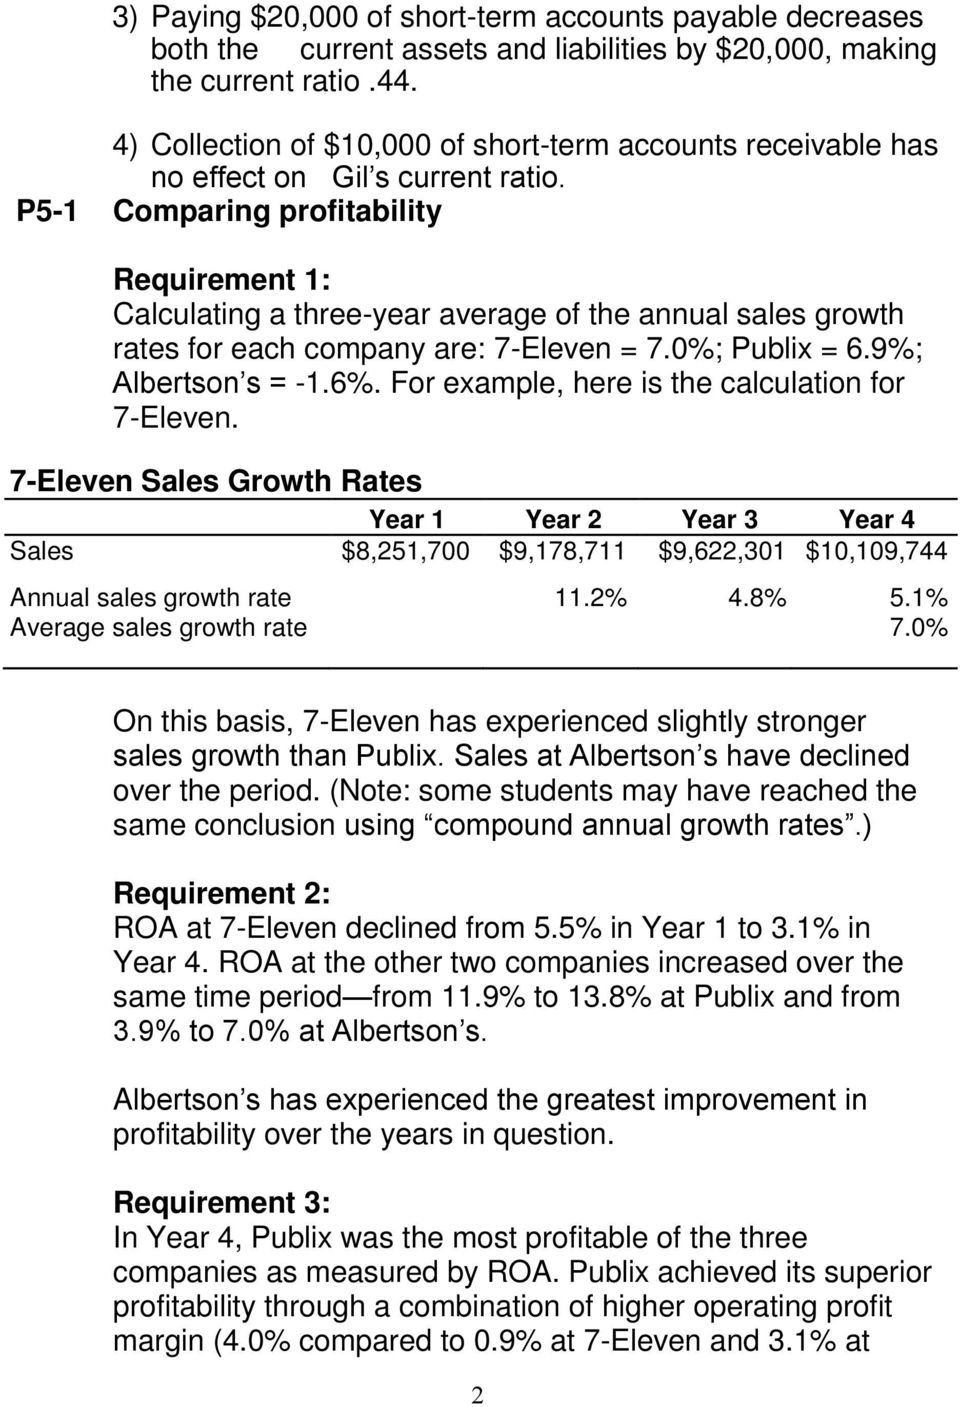 P5-1 Comparing profitability Calculating a three-year average of the annual sales growth rates for each company are: 7-Eleven = 7.0%; Publix = 6.9%; Albertson s = -1.6%.